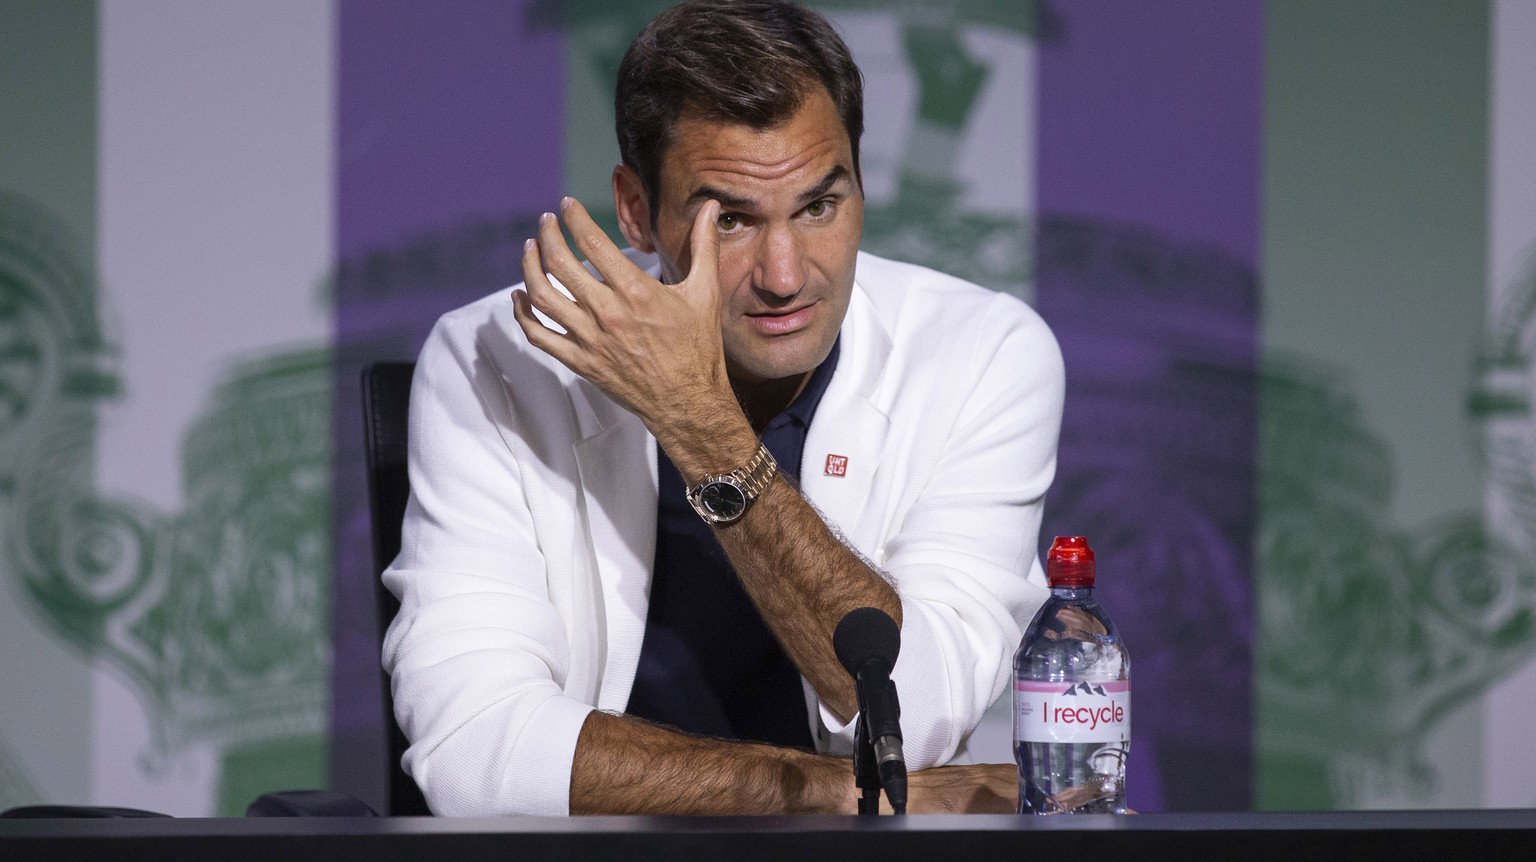 epa07683189 Roger Federer of Switzerland speaks during a press conference at the All England Lawn Tennis Championships in Wimbledon, London 29 June 2019.  EPA/PETER KLAUNZER EDITORIAL USE ONLY; NO SALES, NO ARCHIVES